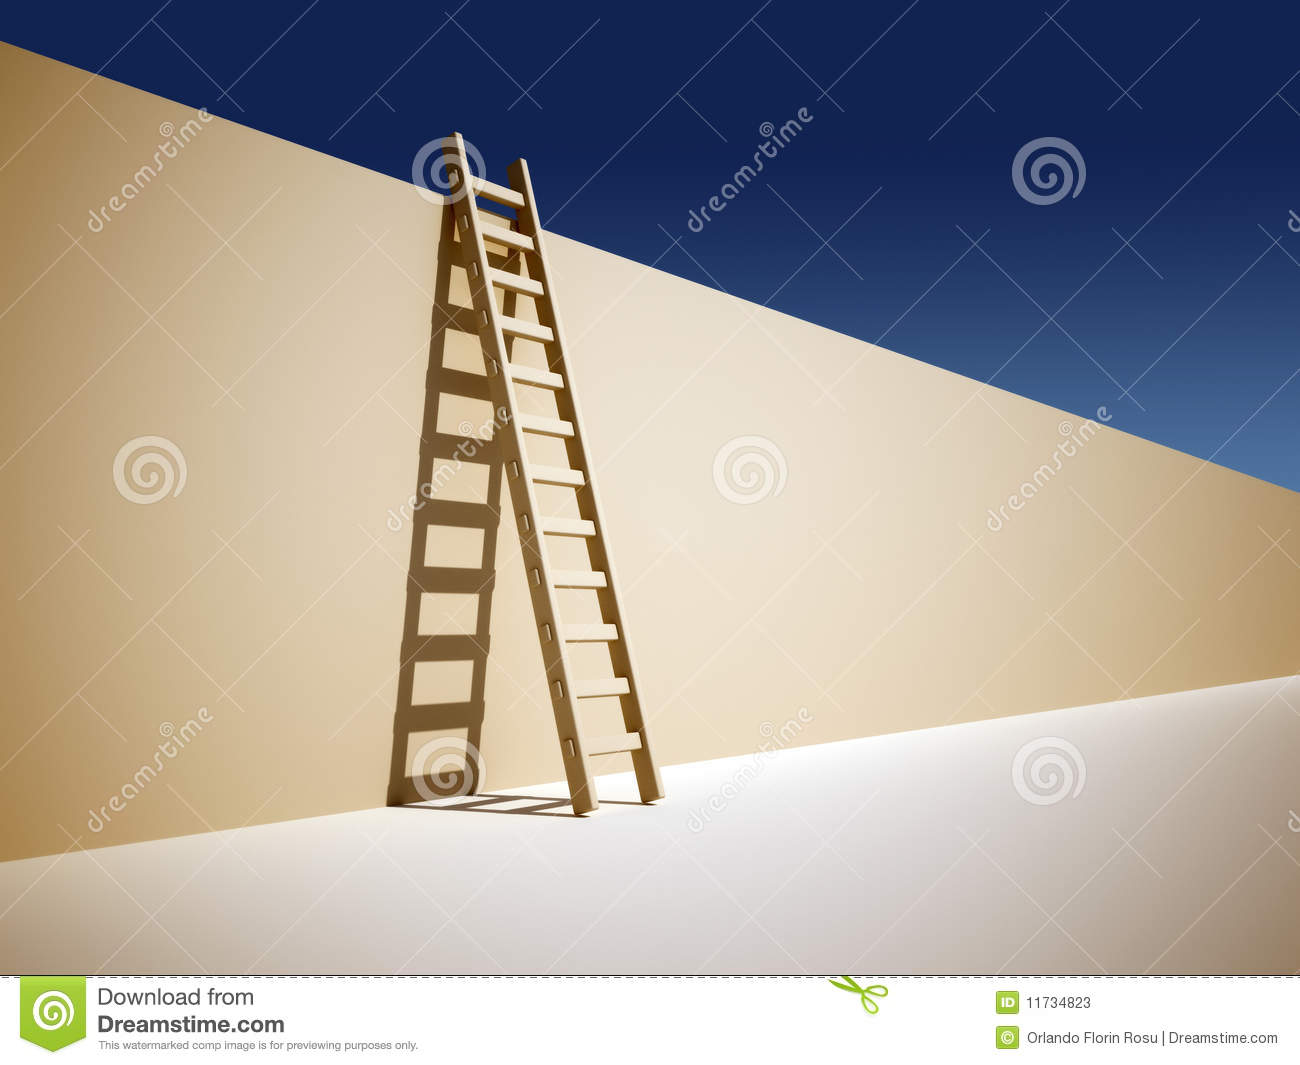 ladder on wall - photo #22